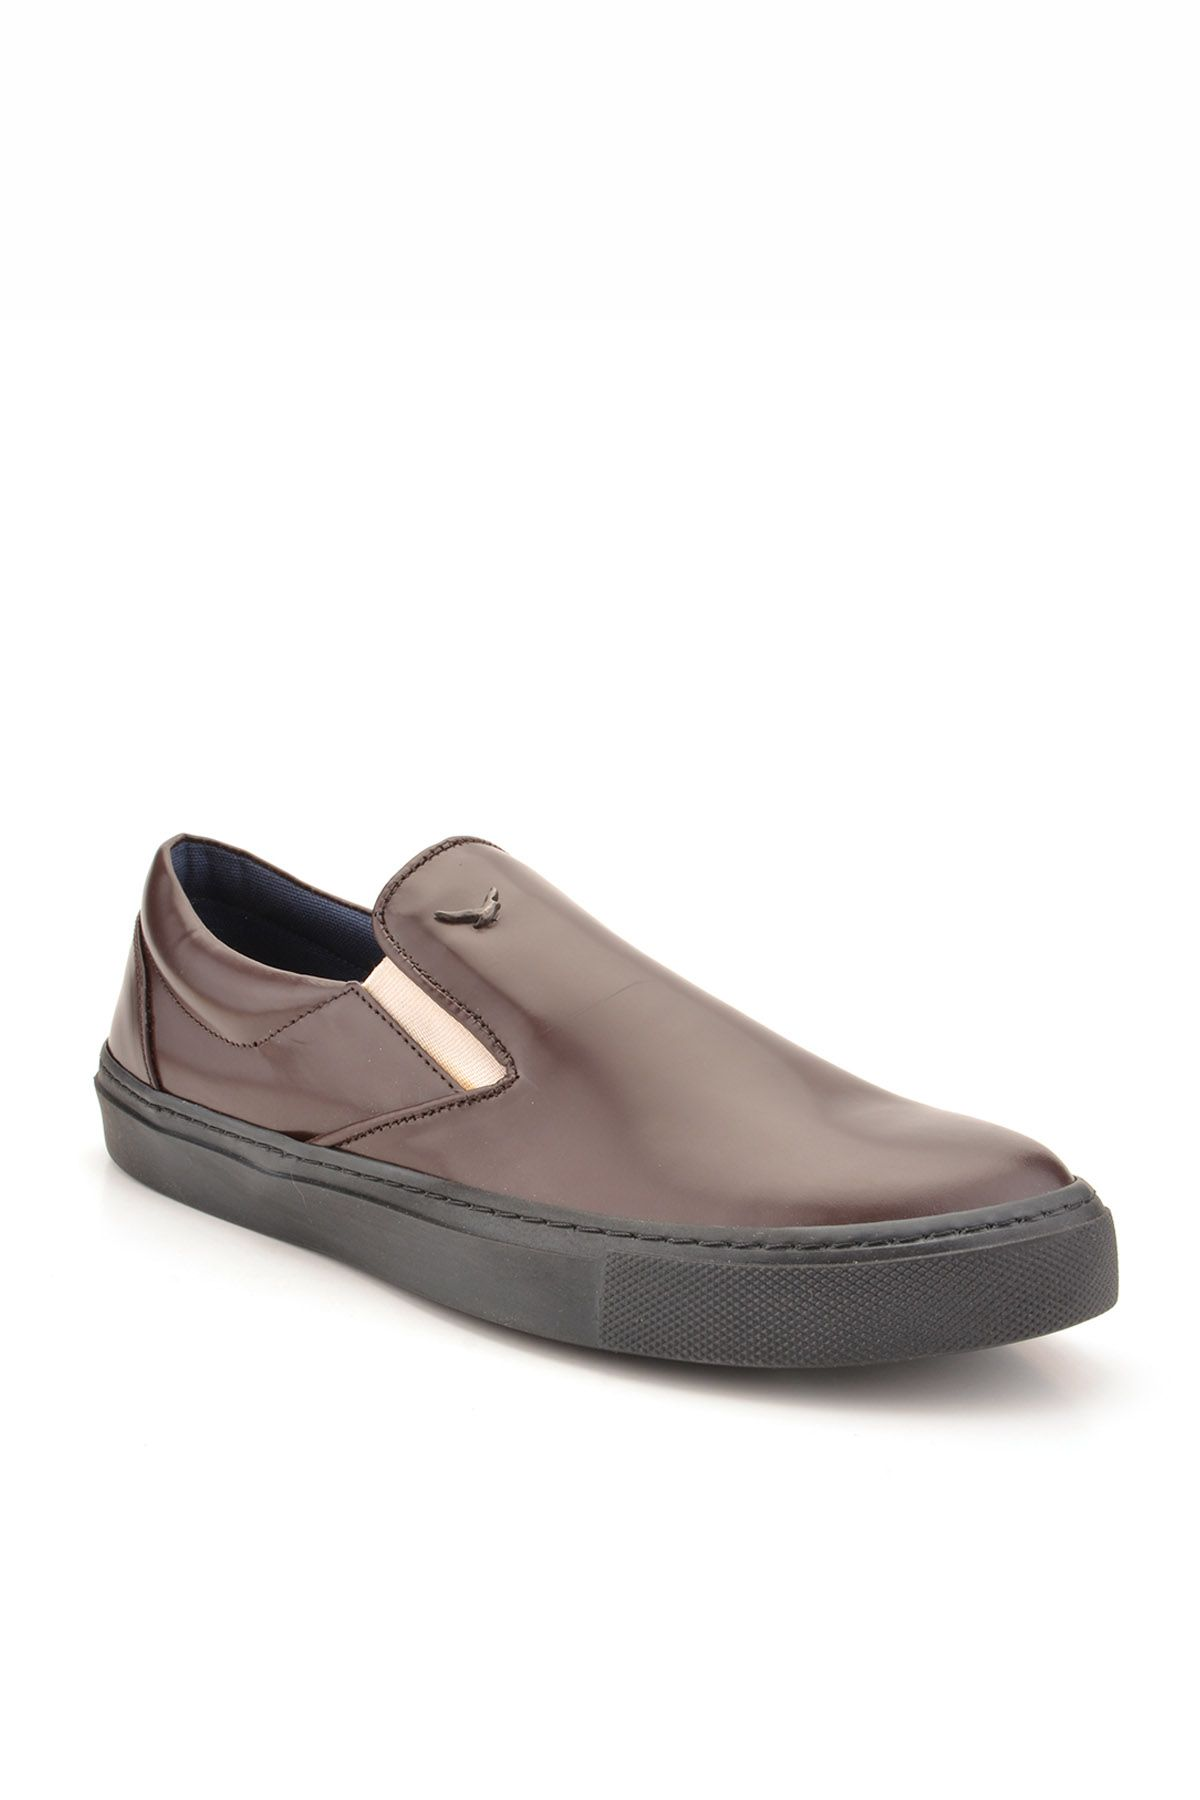 Art Goya Women Sneakers From Polished Leather Brown